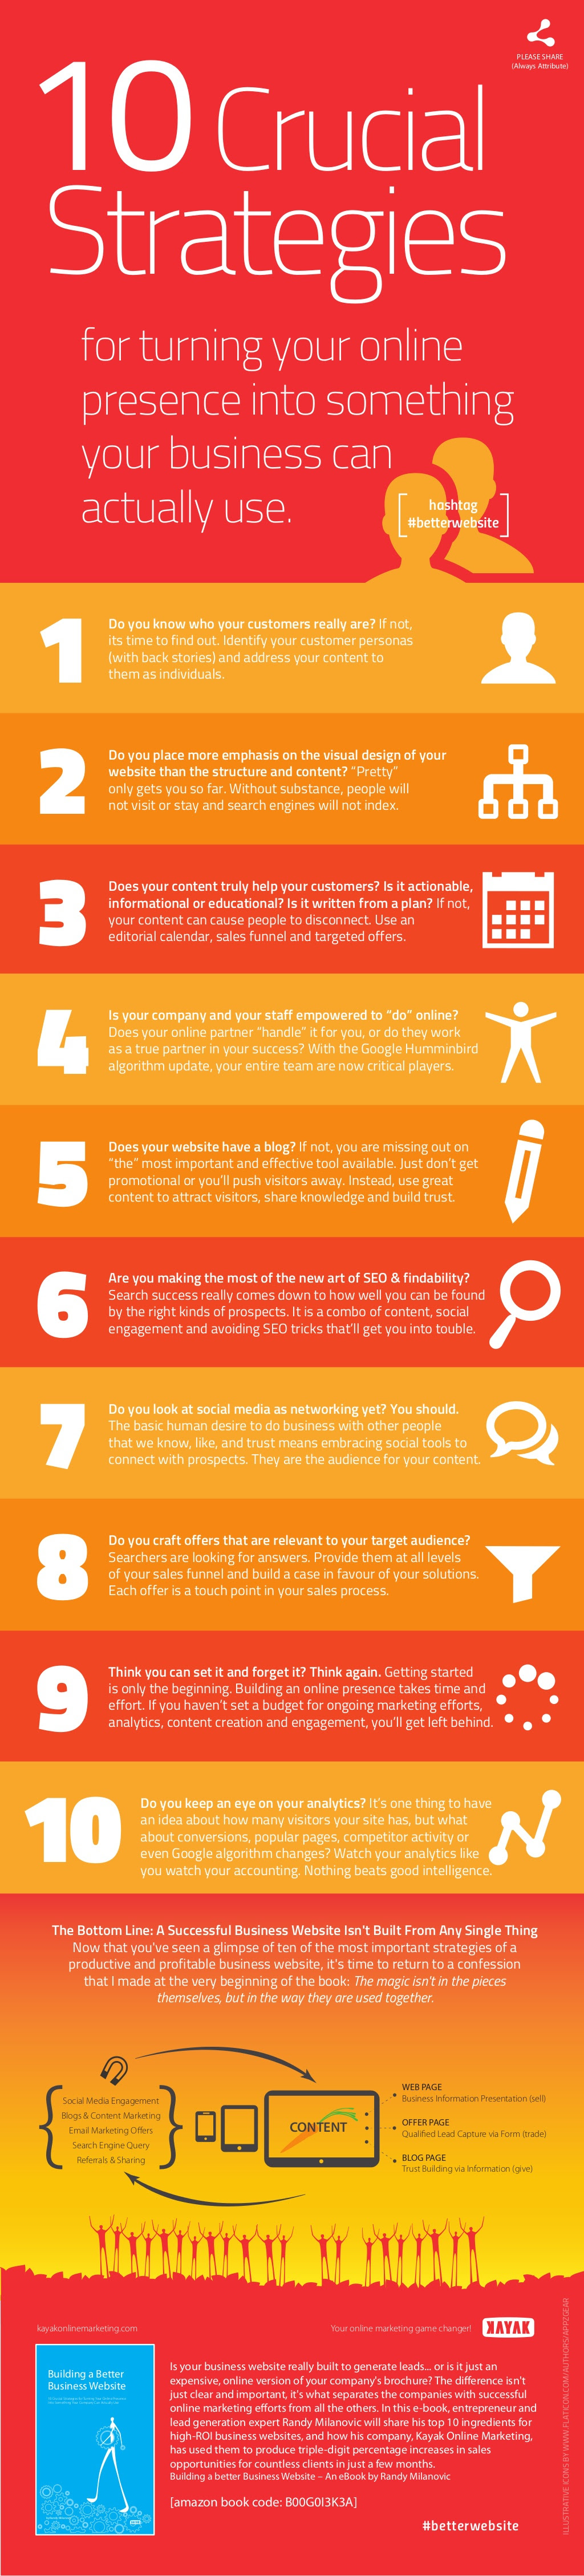 10 Crucial Strategies for Turning Your Online Presence Into Something Your Company Can Actually Use - infographic